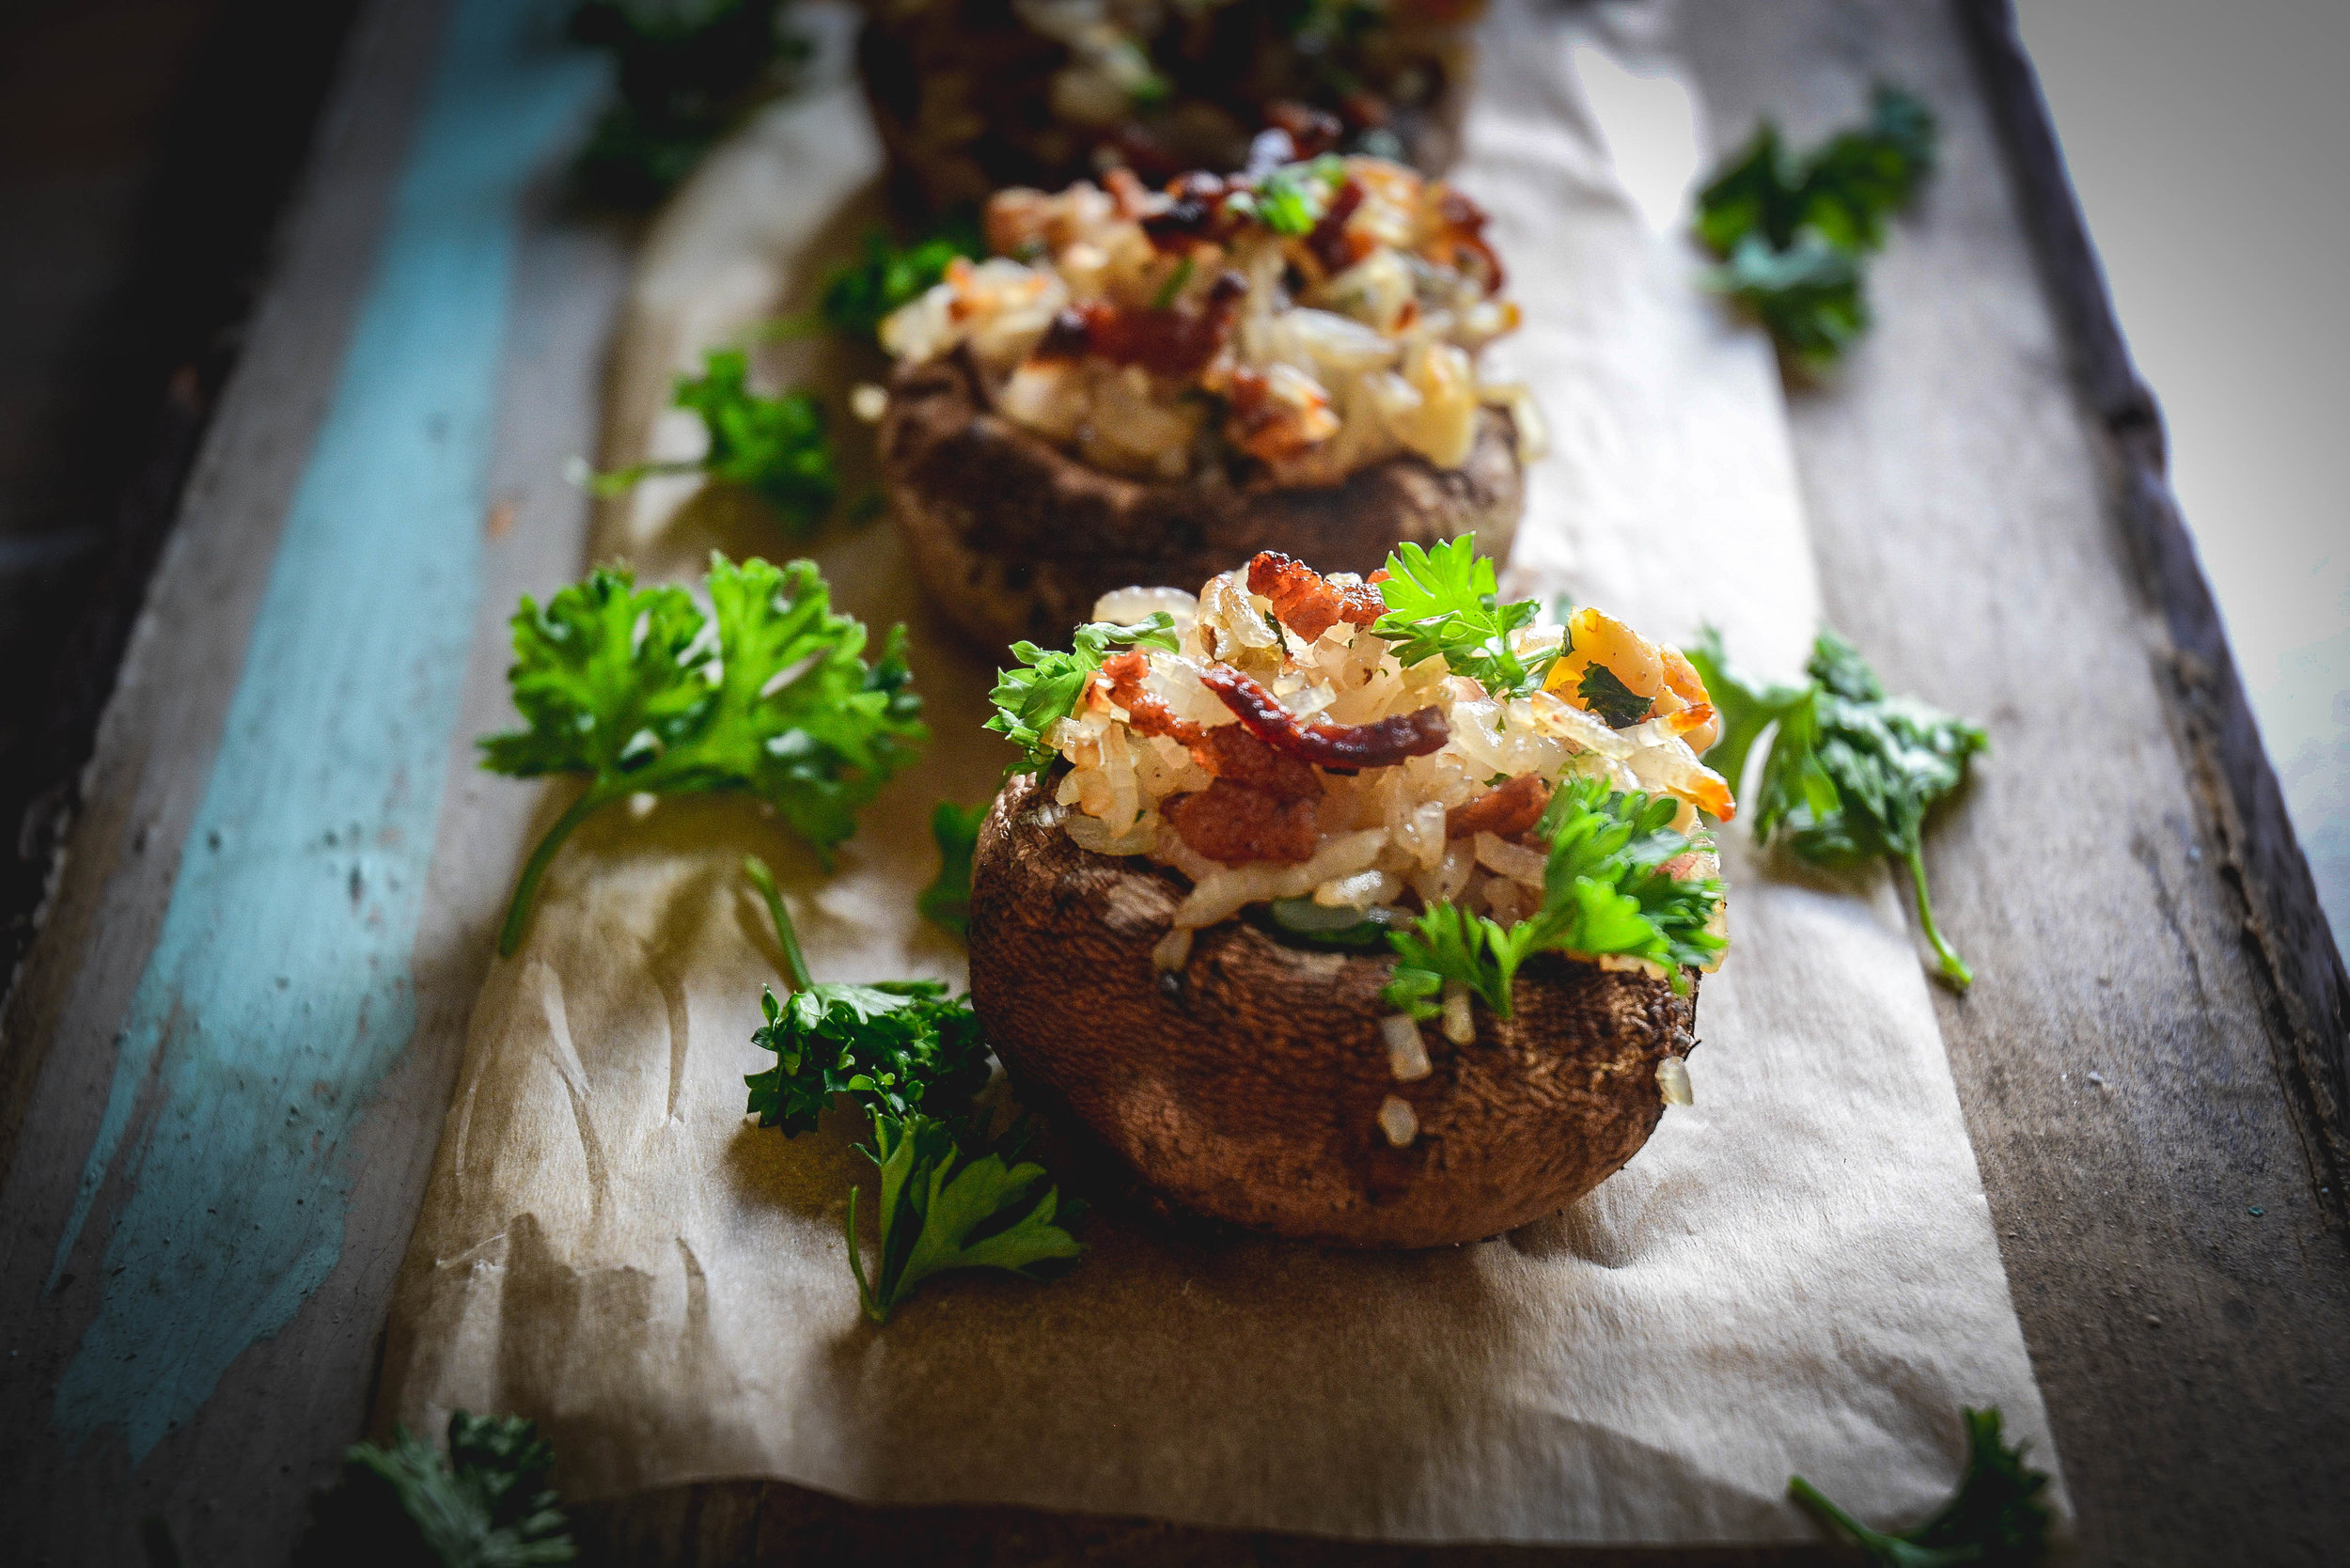 stuffed mushrooms on board with parsley